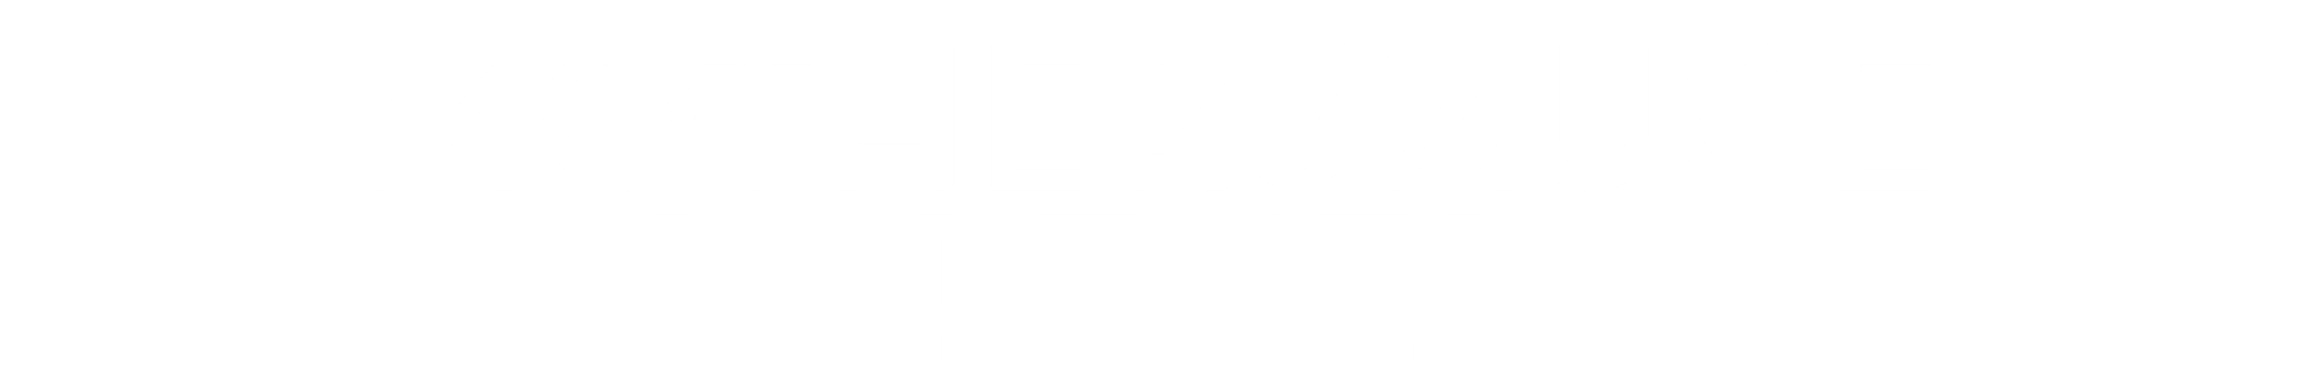 PARTNERS (1).png